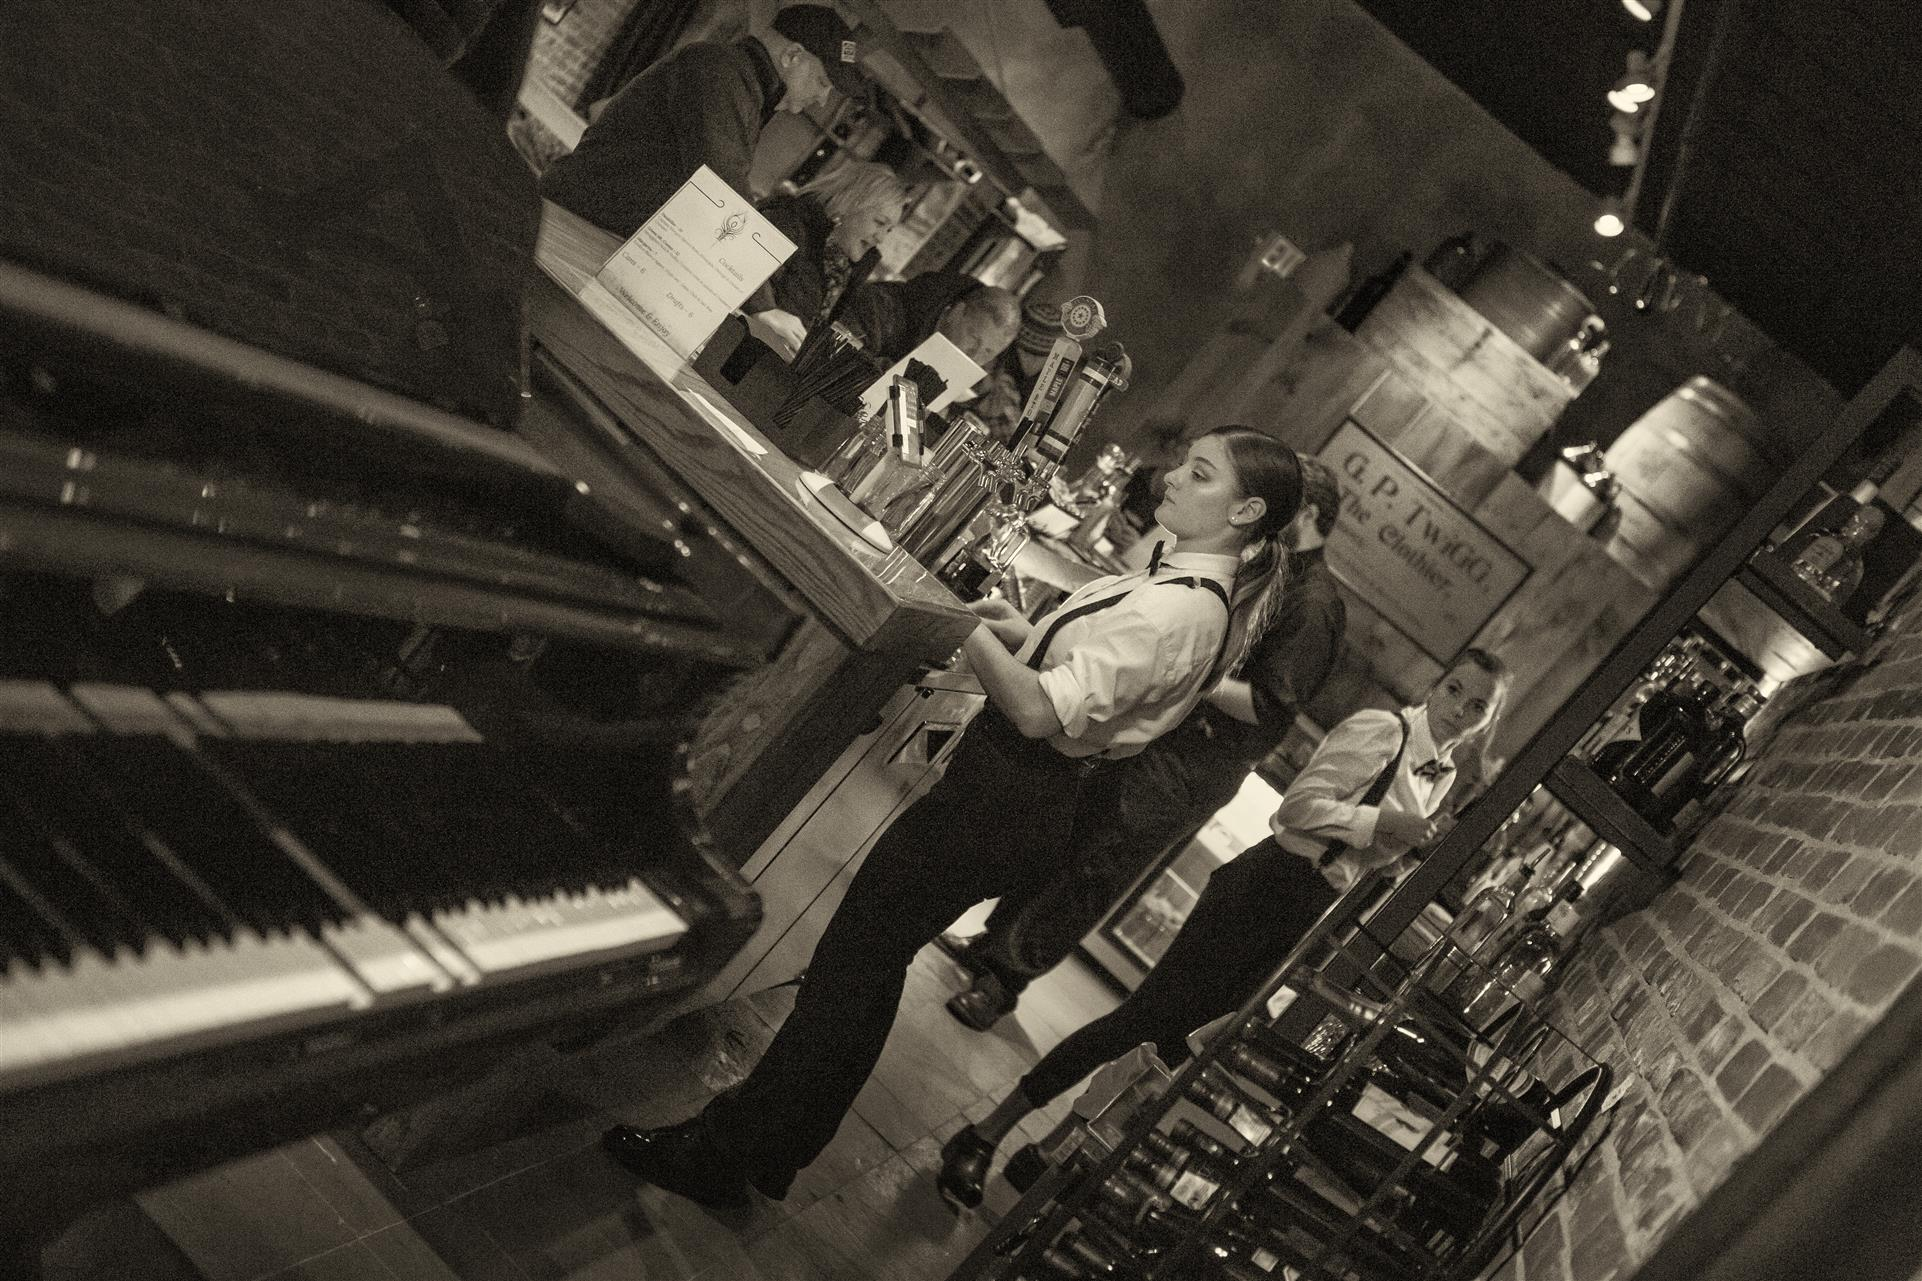 a bartender, near a piano